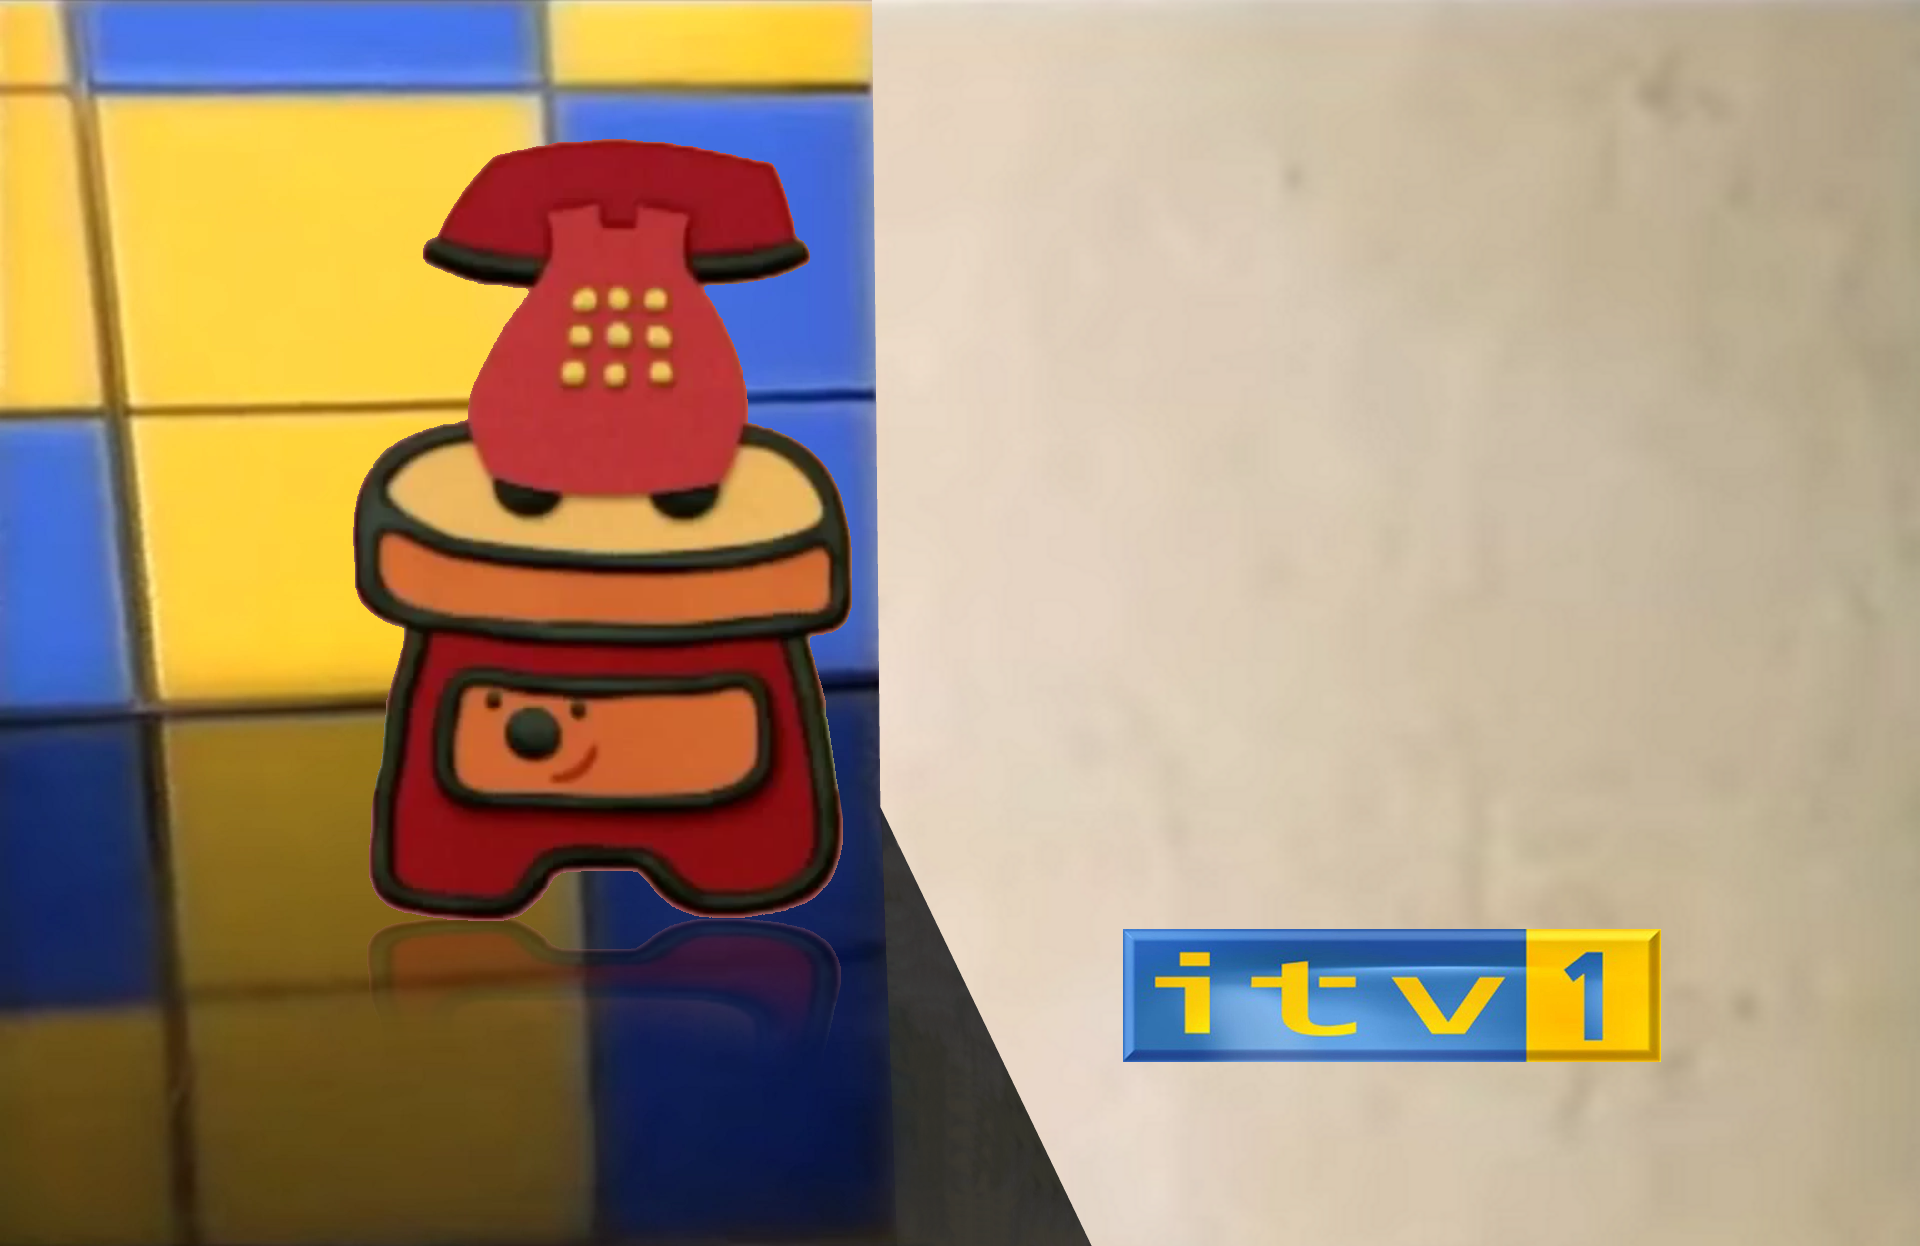 Image   ITV1 ID   Sidetable Drawer From Blueu0027s Clues.png | Logofanonpedia |  FANDOM Powered By Wikia